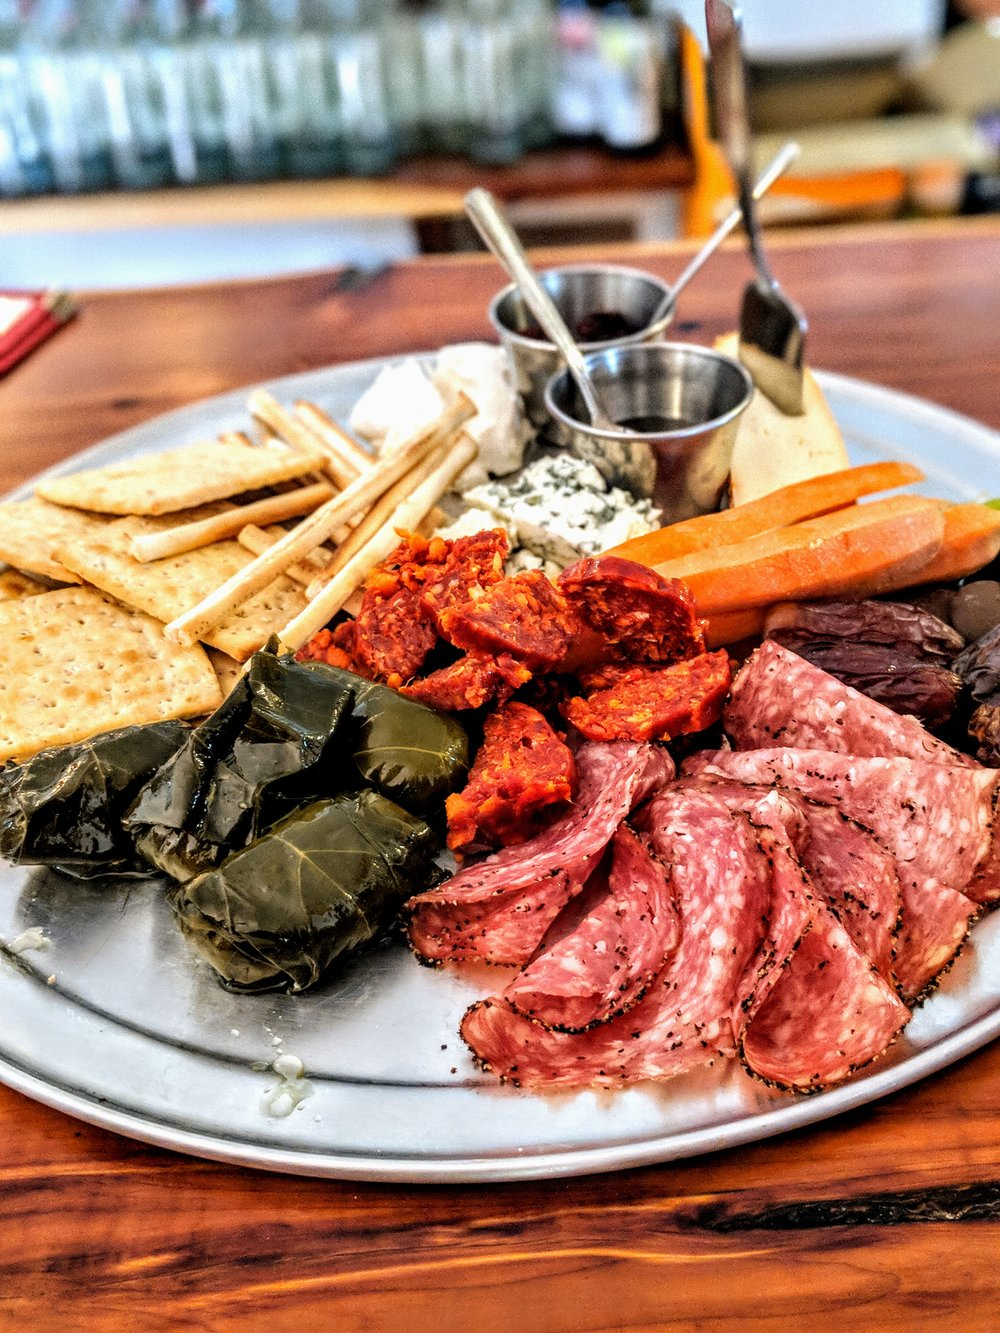 Dope meat and cheese plate!